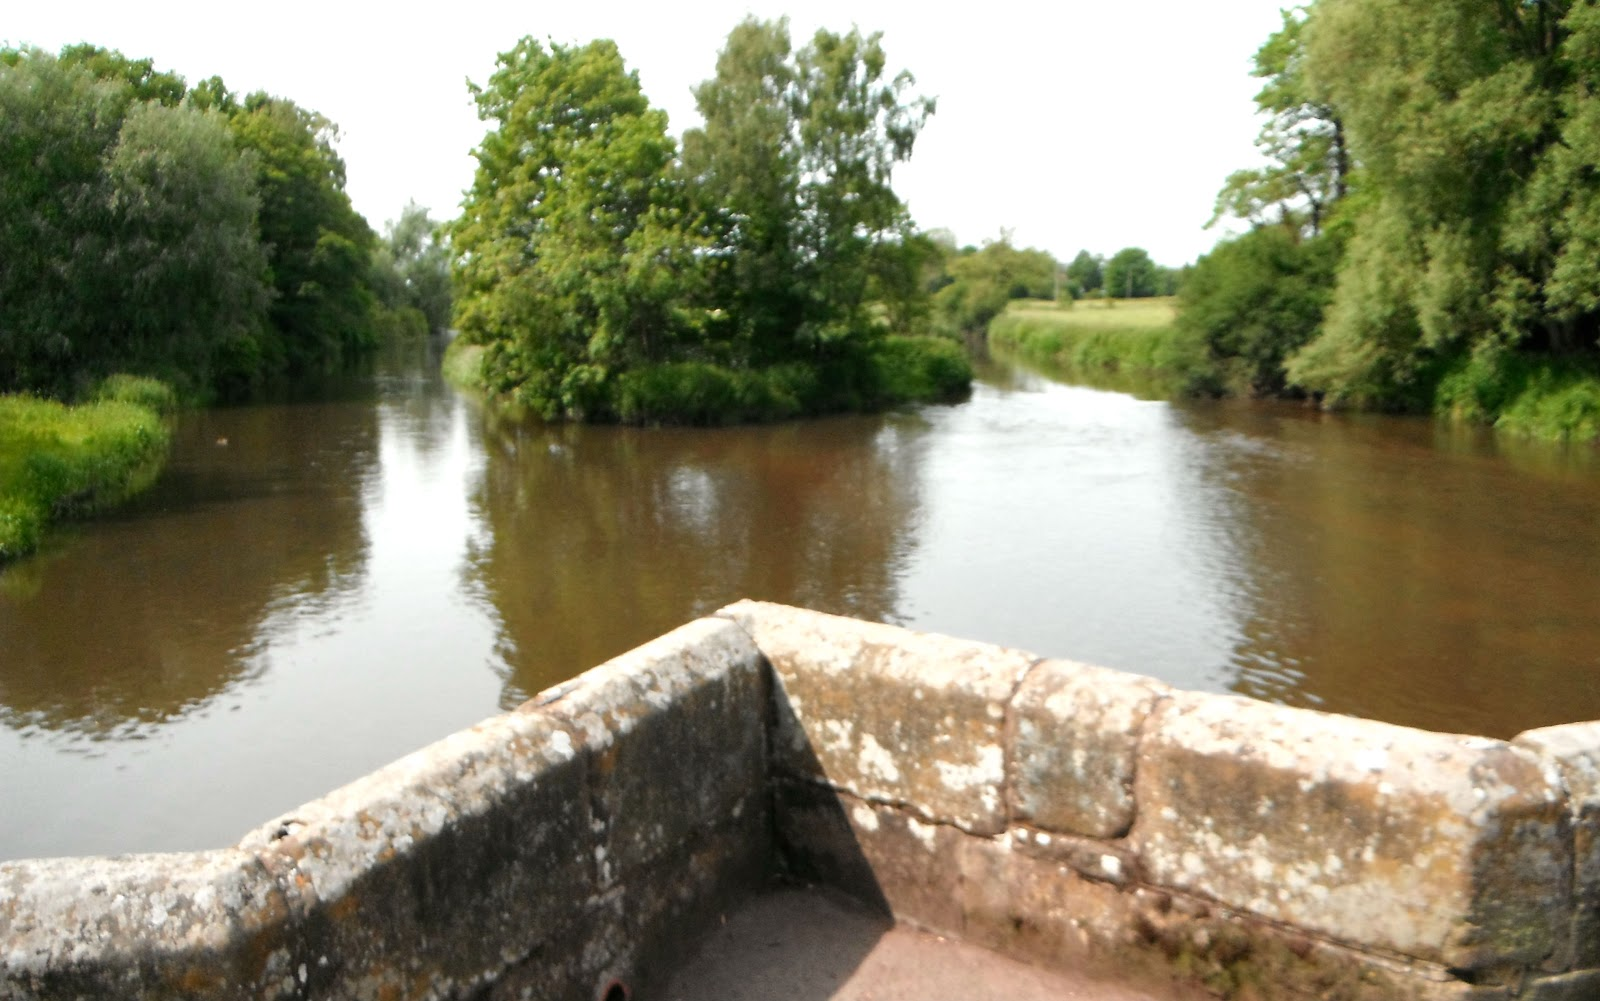 View from Essex Bridge toward the River Trent and the River Sow